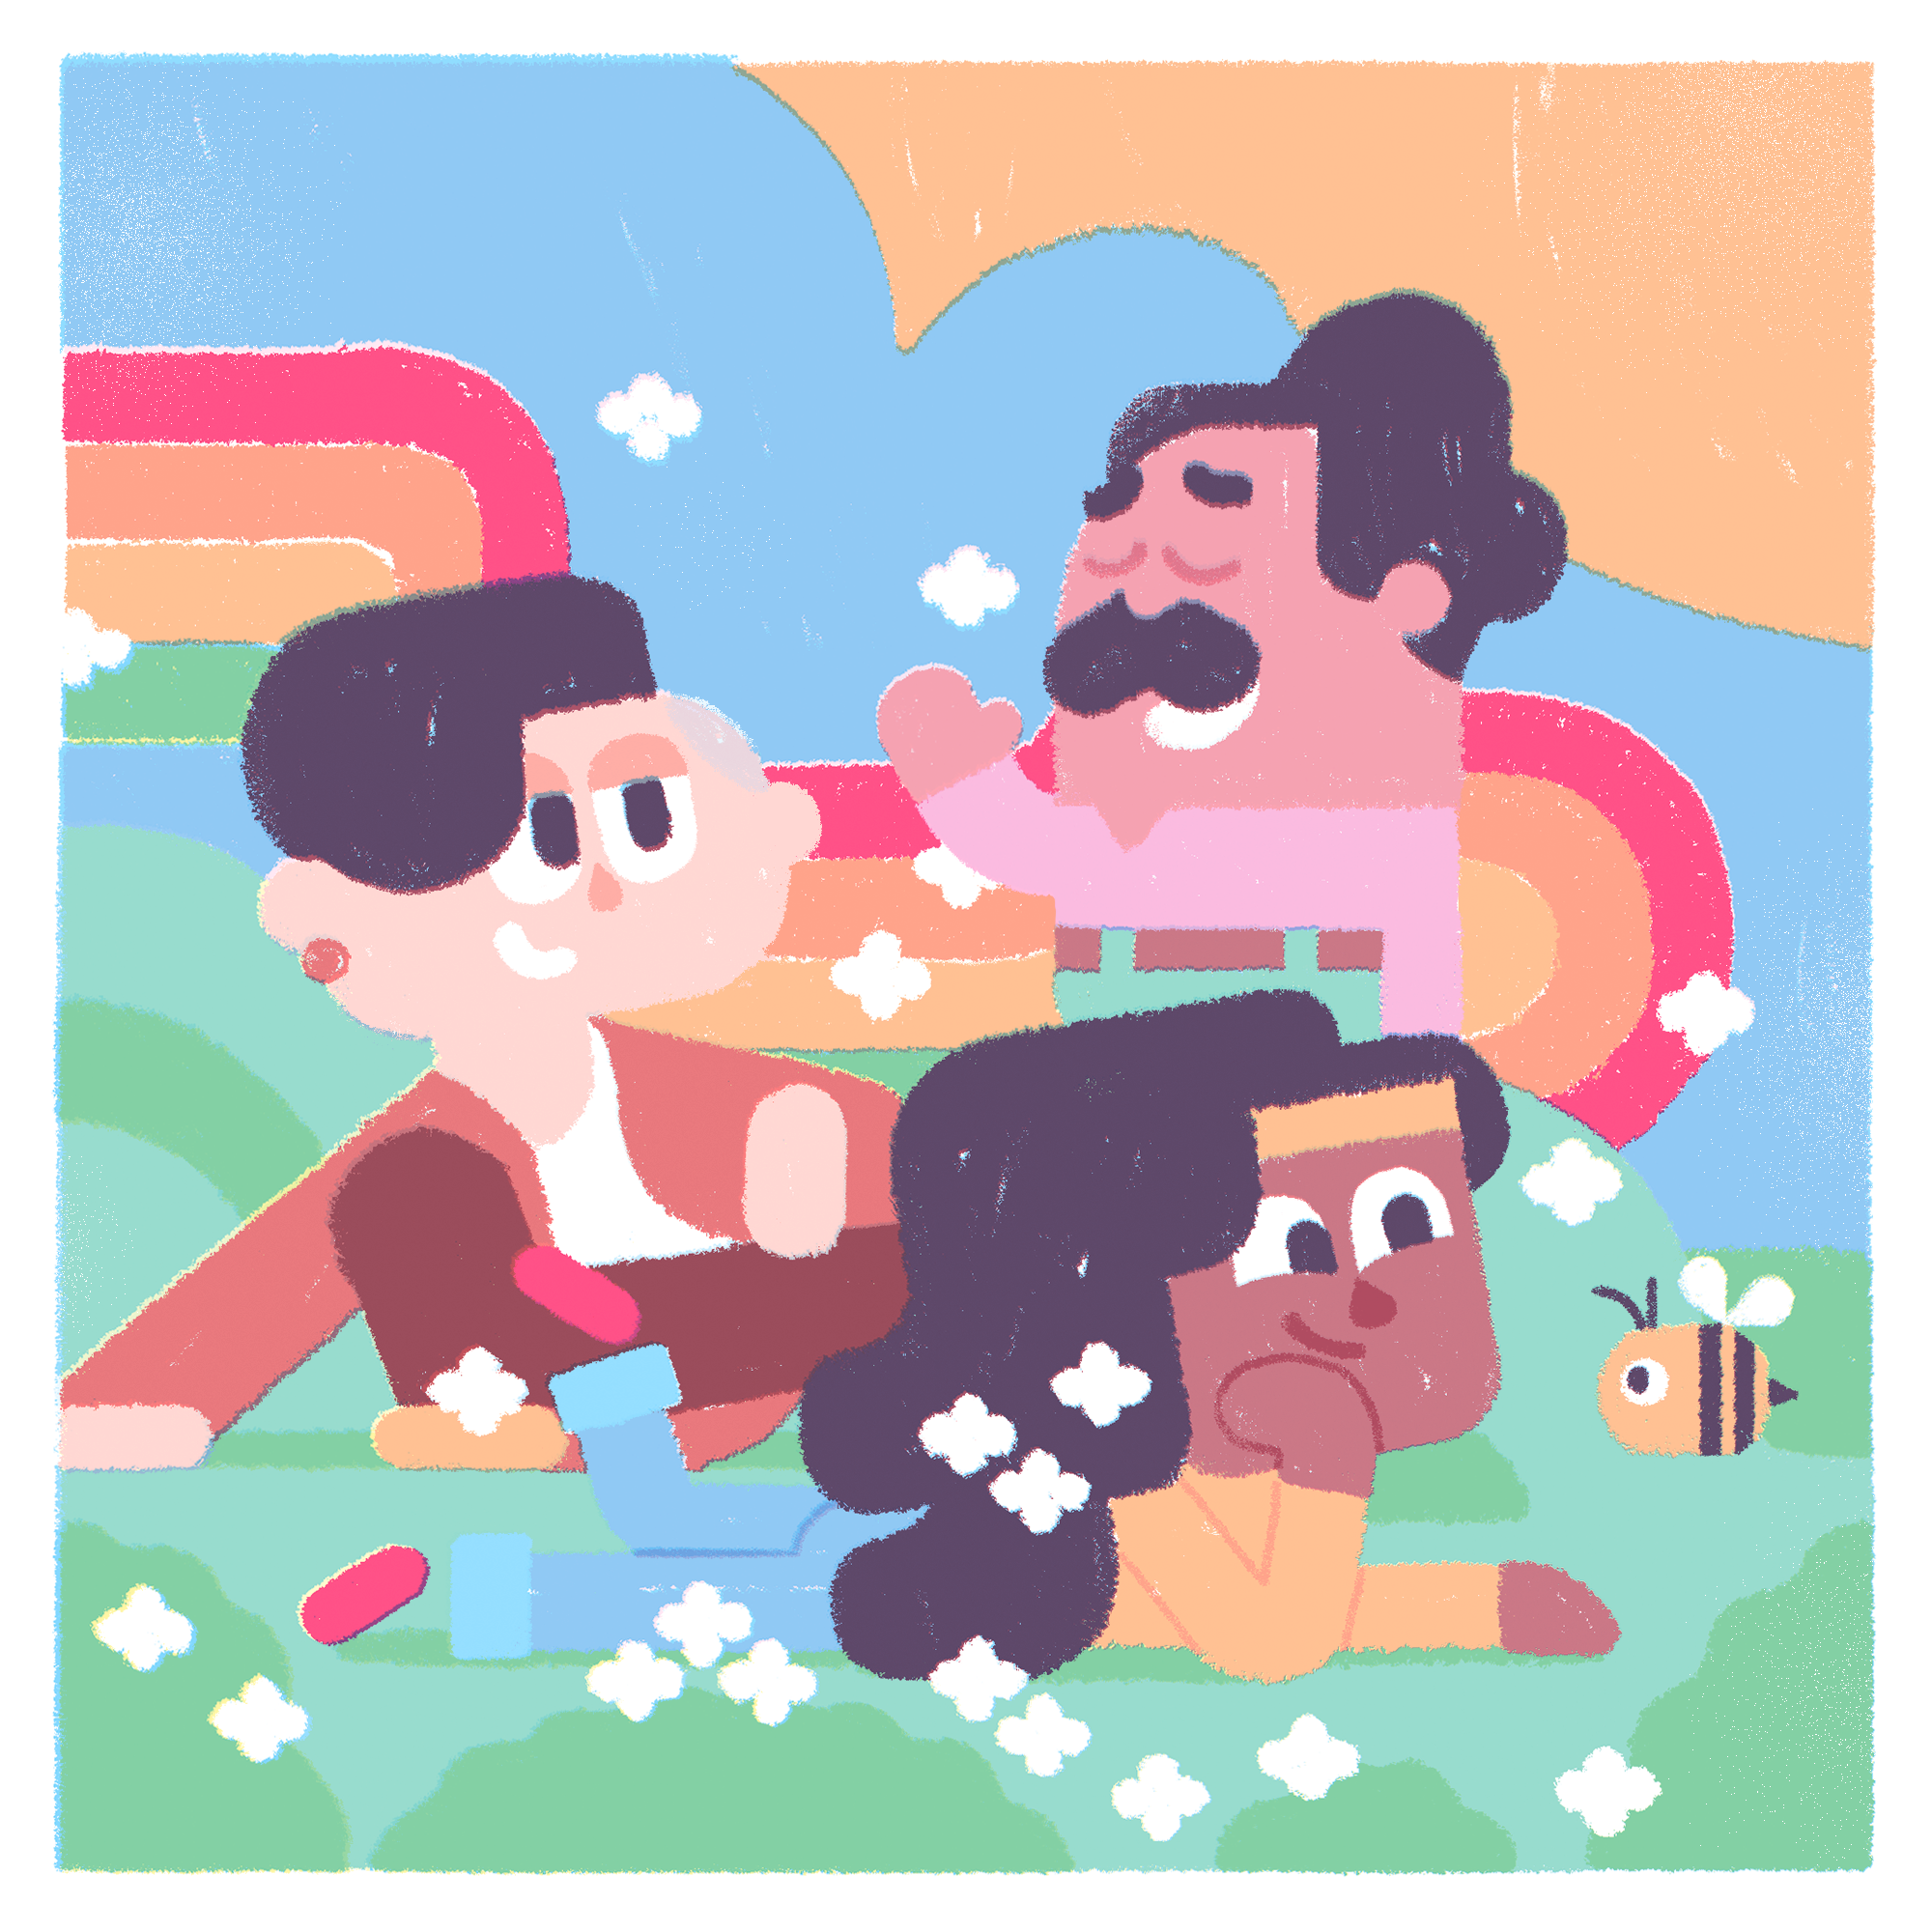 Illustration of the three LGBTQIA Duolingo characters, Lin, Oscar, and Bea. They are in a meadow fillied with flowers, bees, rainbows and the sky is blue. Bea is lying in the grass smiling at a bee and looking whimsical. Lin is sitting cross-legged nearby and Oscar seems to be standing on a hill nearby.